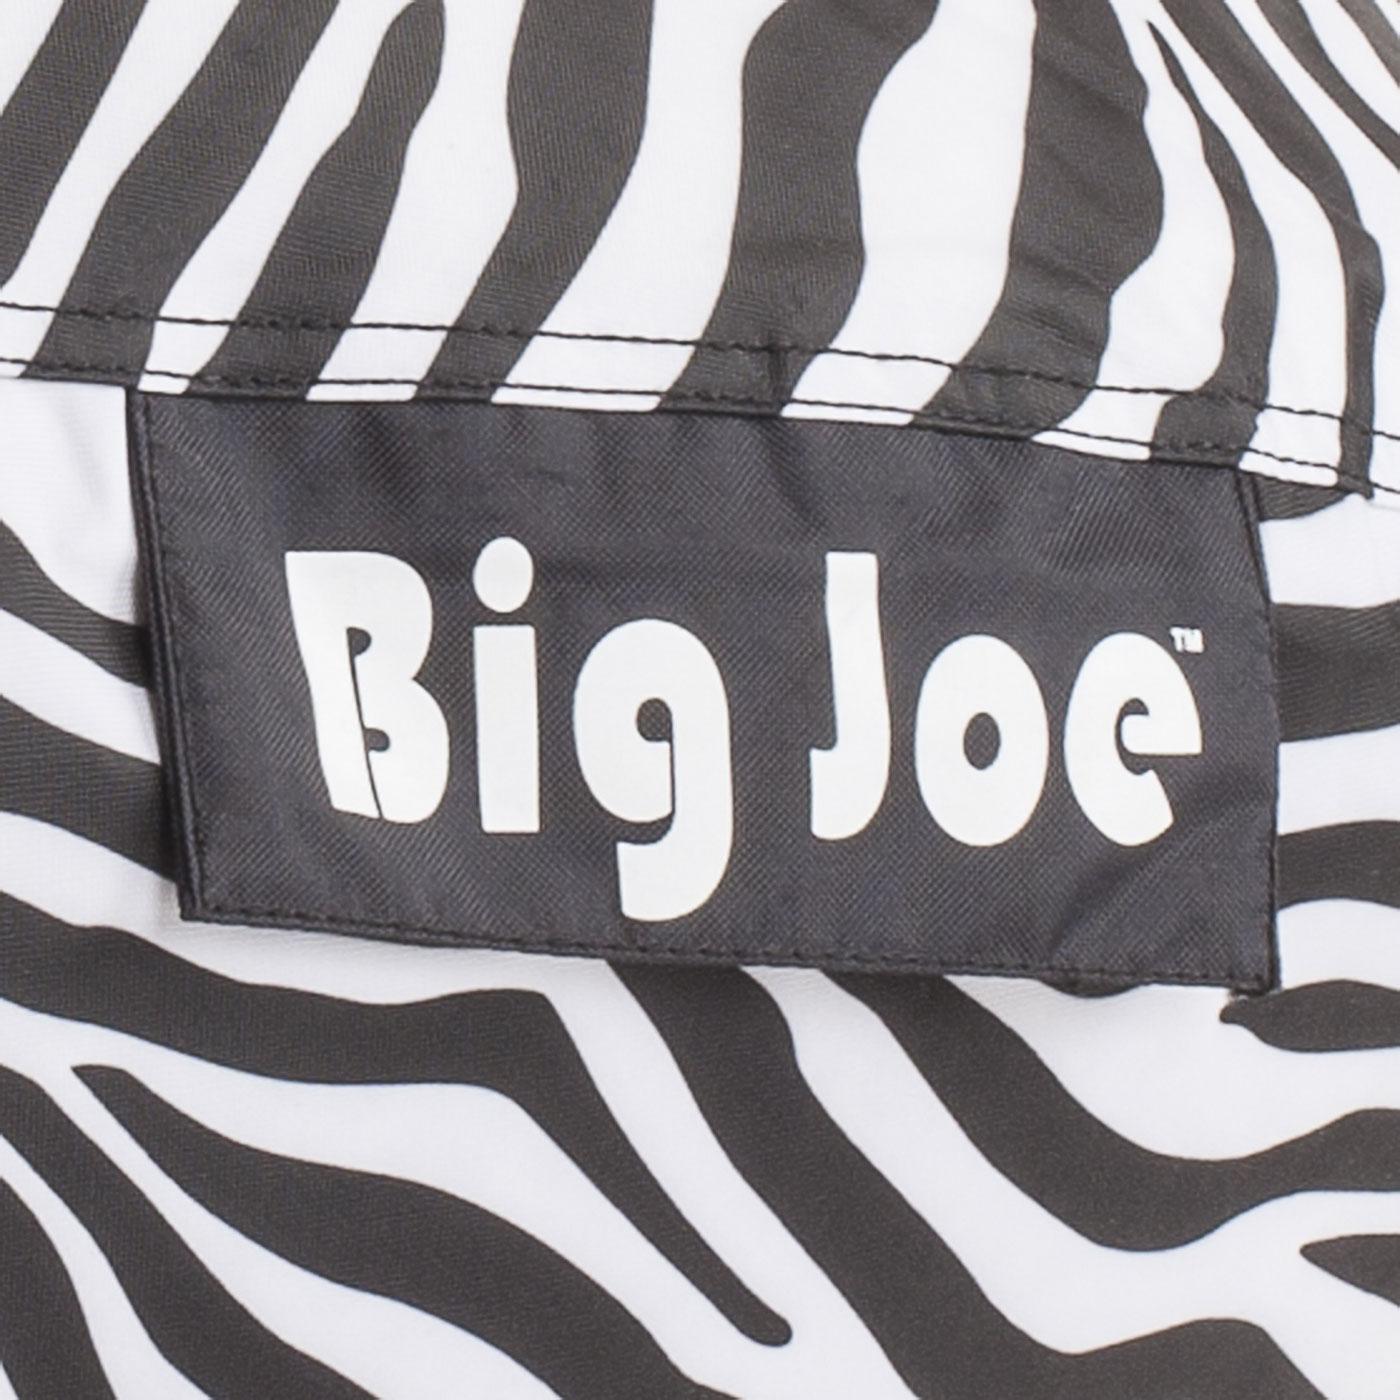 Sensational Comfort Research Big Joe Original 98 Smartmax Bean Bag Chair In Zebra Onthecornerstone Fun Painted Chair Ideas Images Onthecornerstoneorg